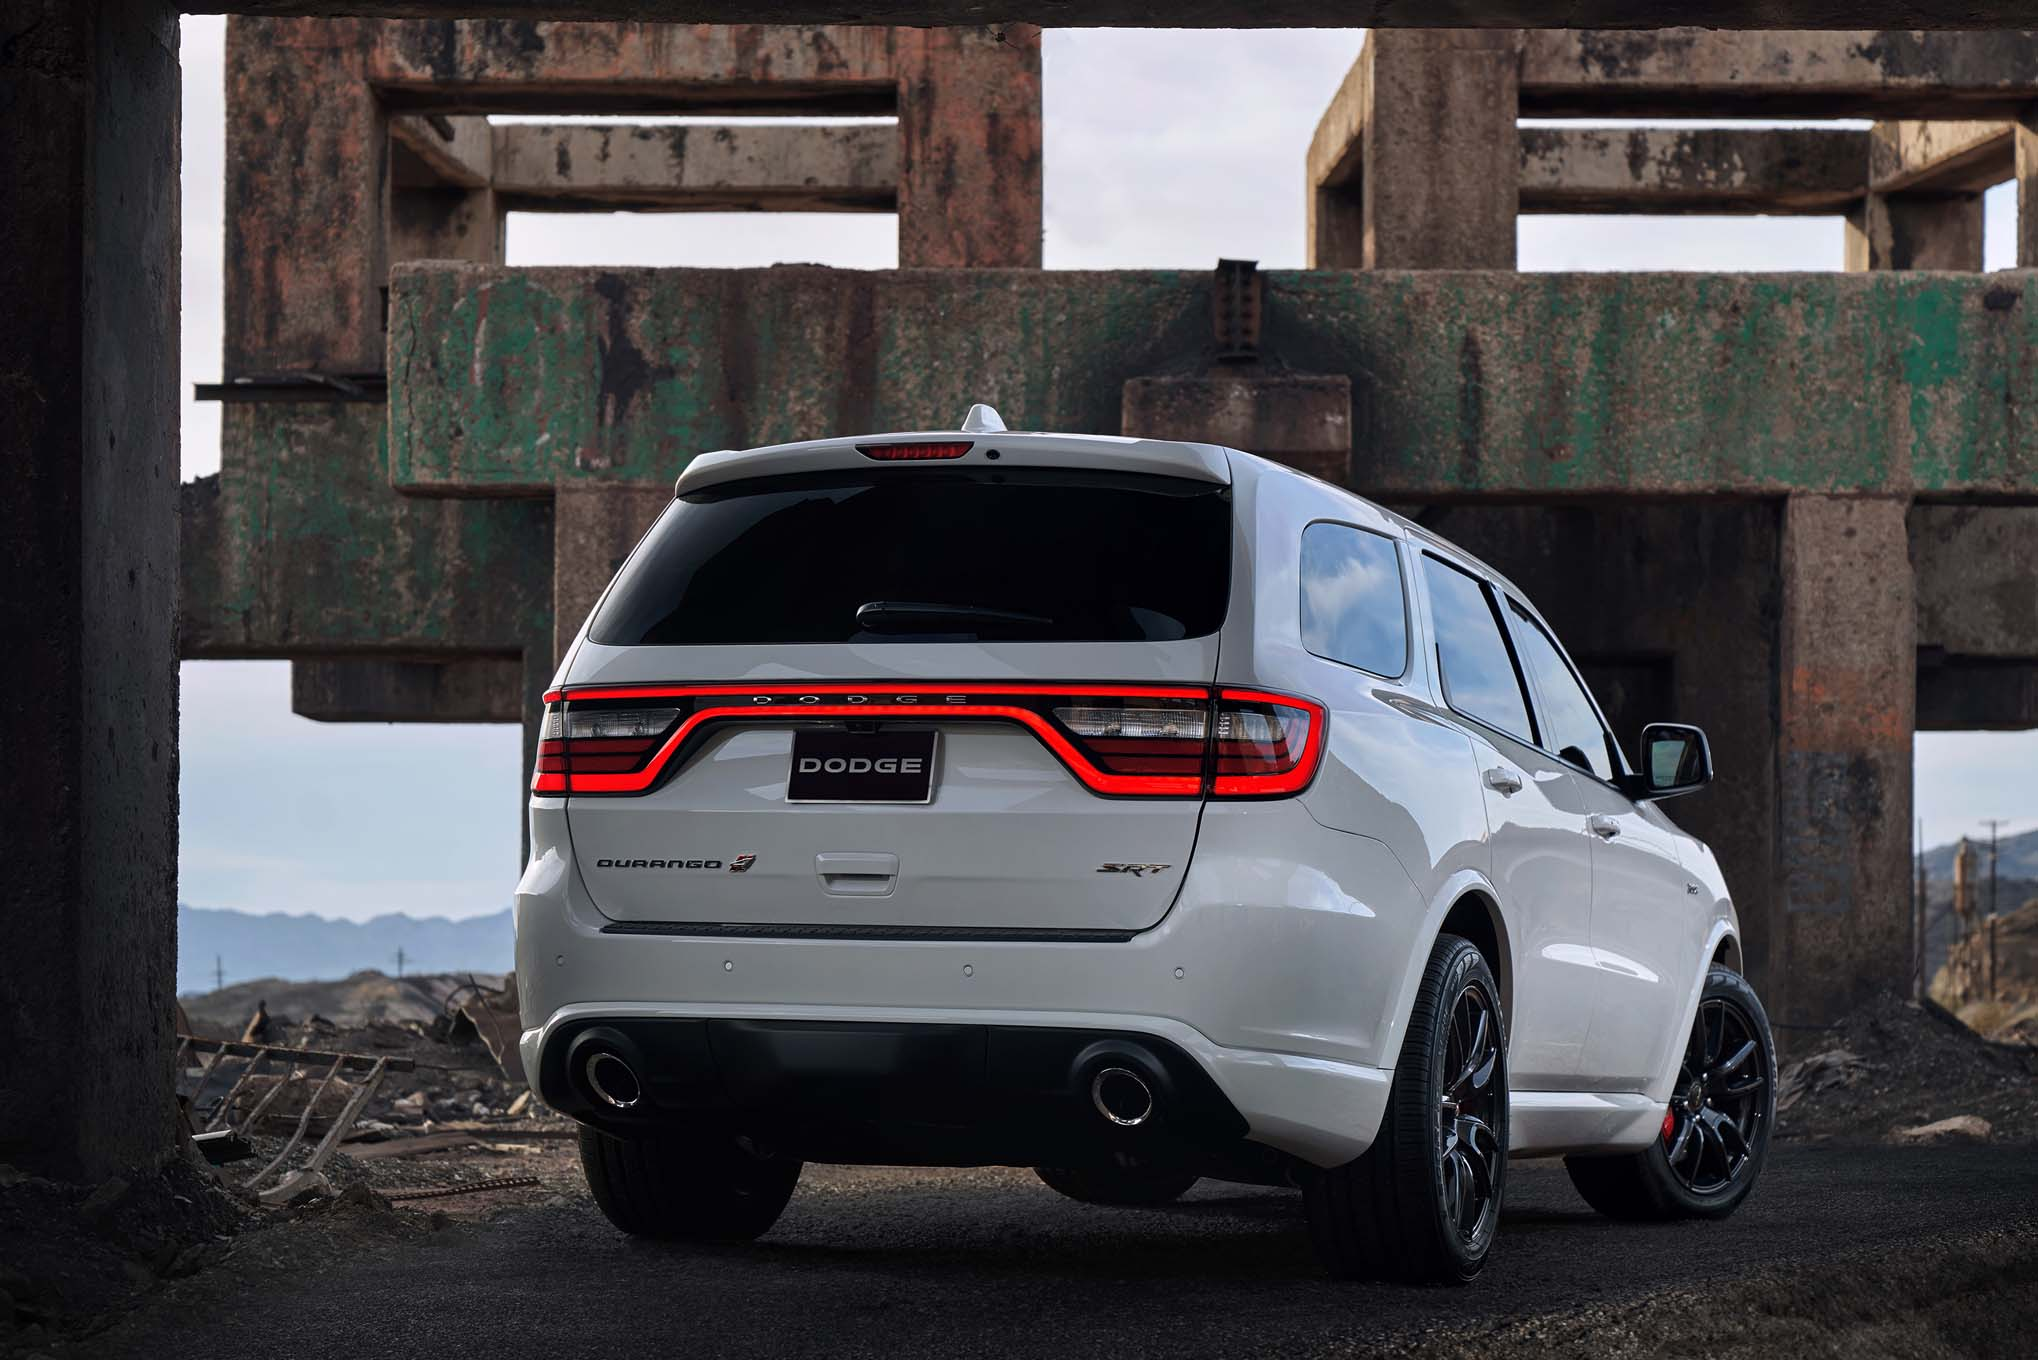 2018 Dodge Durango SRT Pricing Announced, Starts at $64,090